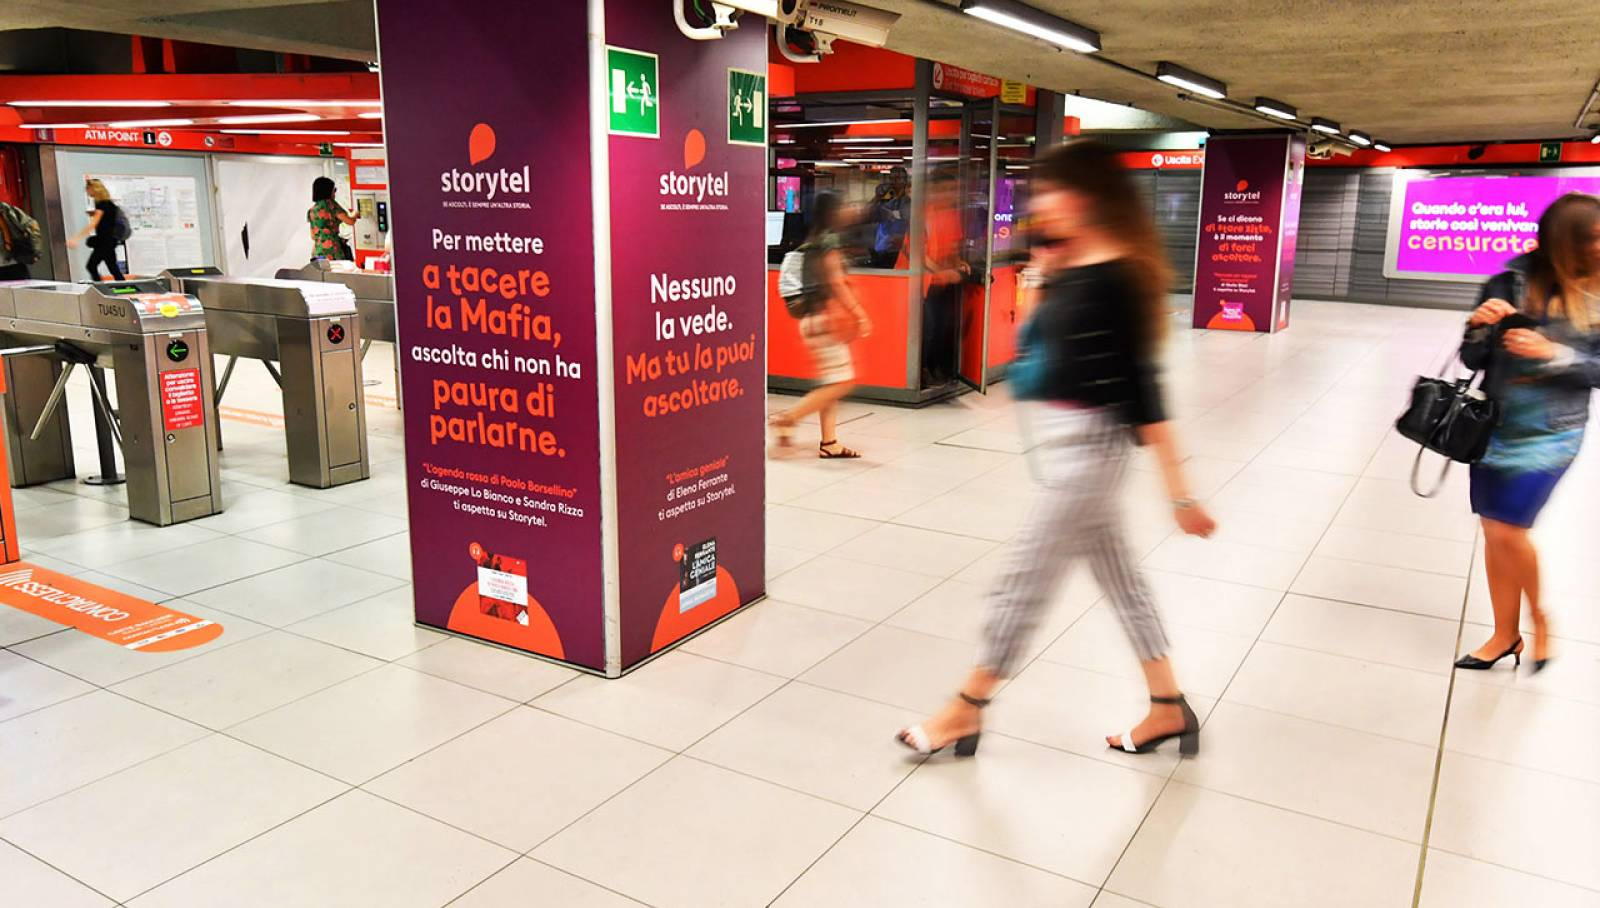 Out of Home IGPDecaux in Milan Station Domination for Storytel